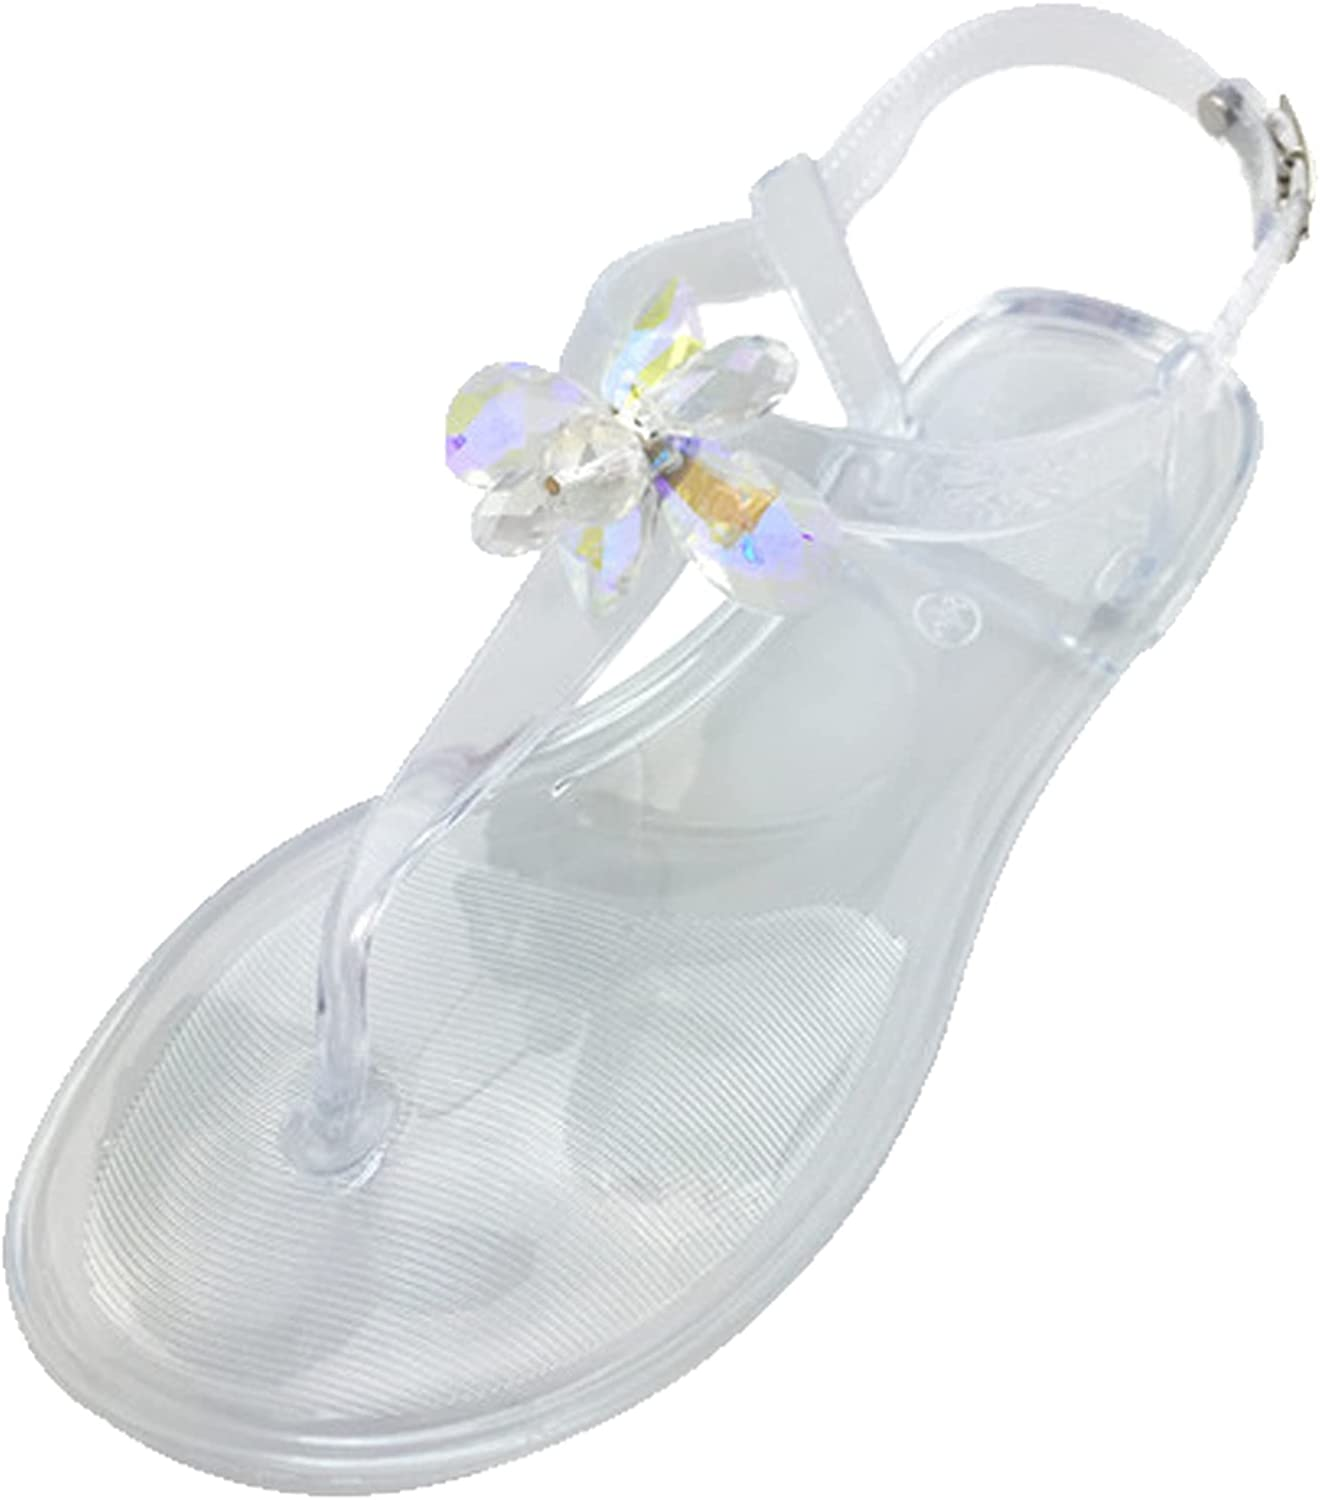 ZiSUGP Women's Flat Thong Sandals Comfortable Orthotic Sandals with Arch Support Beach Rhinestone Jelly Sandal Ladies Travel Walking Flats Shoes